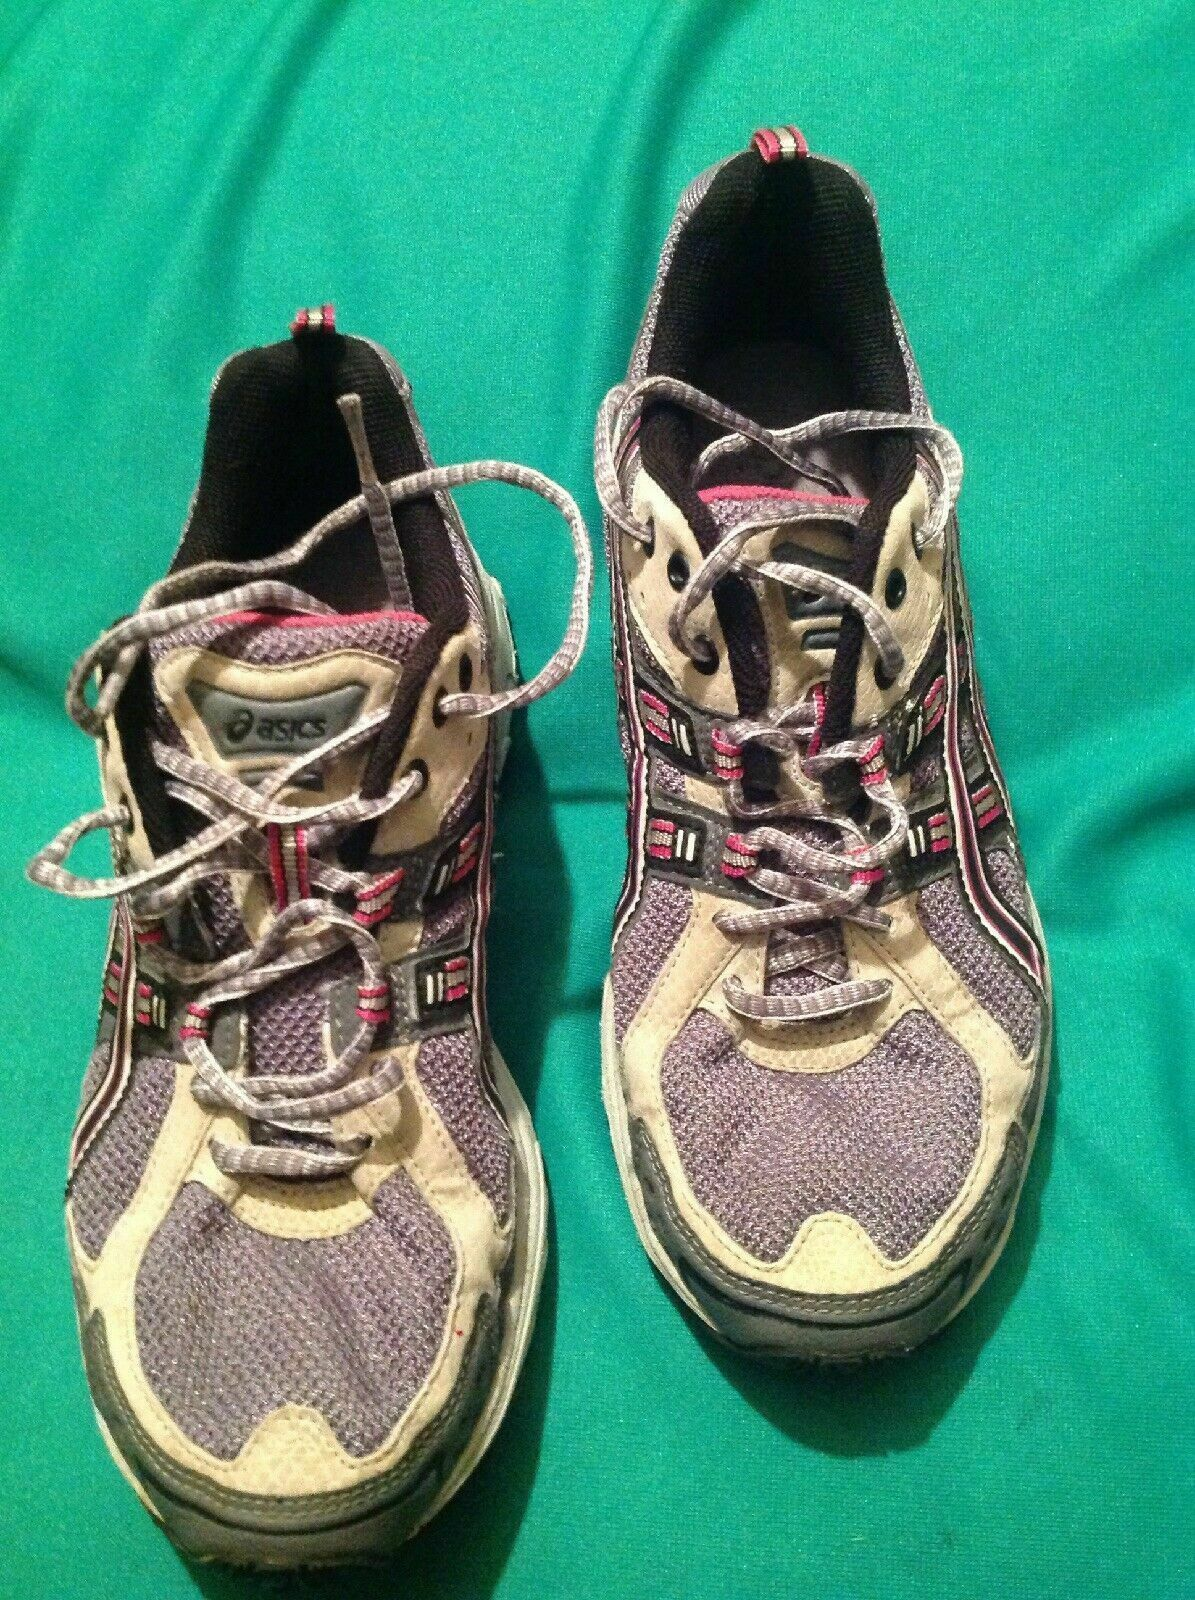 ASICS 9M WOMEN'S GEL ENDURO 5 RUNNING ATHLETIC SHOES SNEAKERS T9C9N GRAY GUC